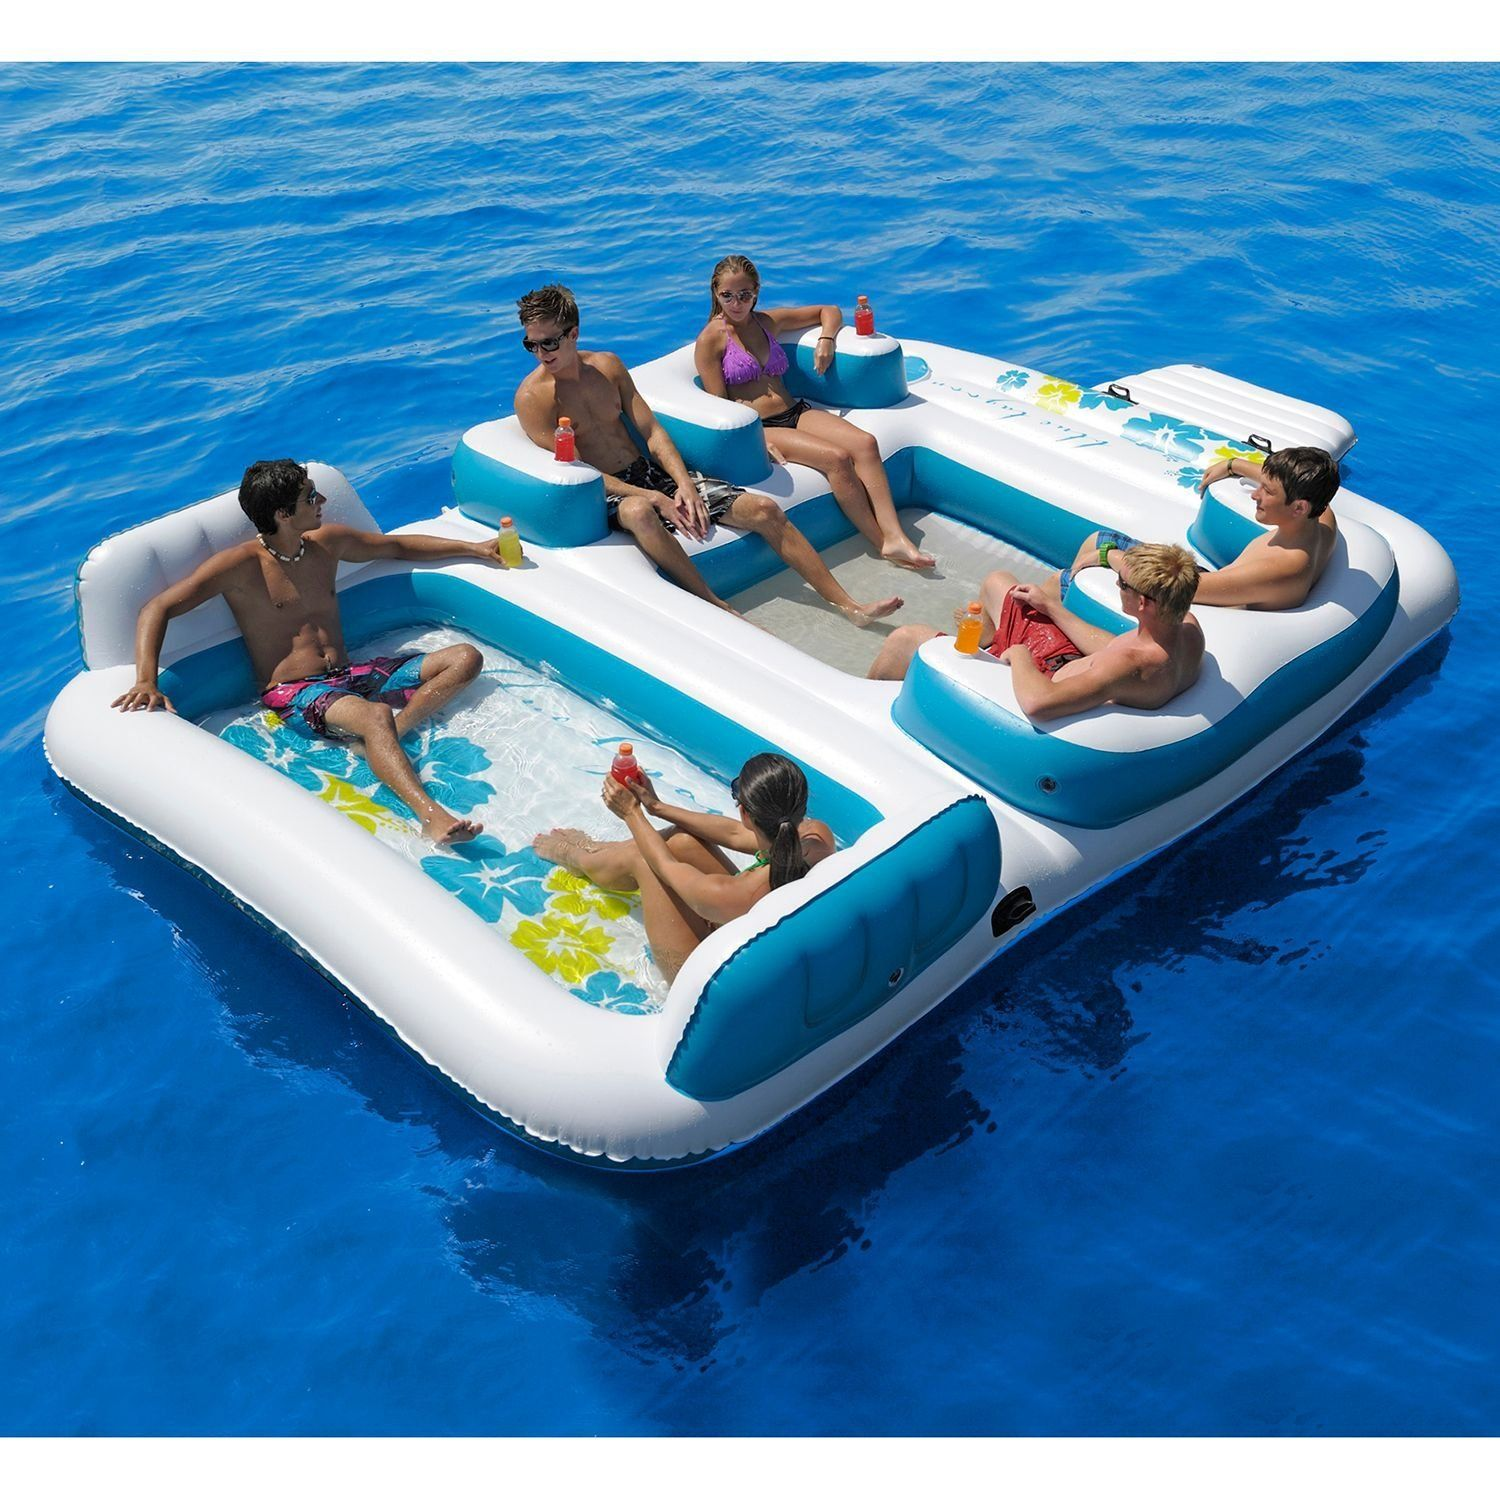 New Giant Inflatable Floating Island 6 Person Raft Pool Lake Float 15 8x 9 4 Inflatable Floating Island Lake Floats Floating Island Raft